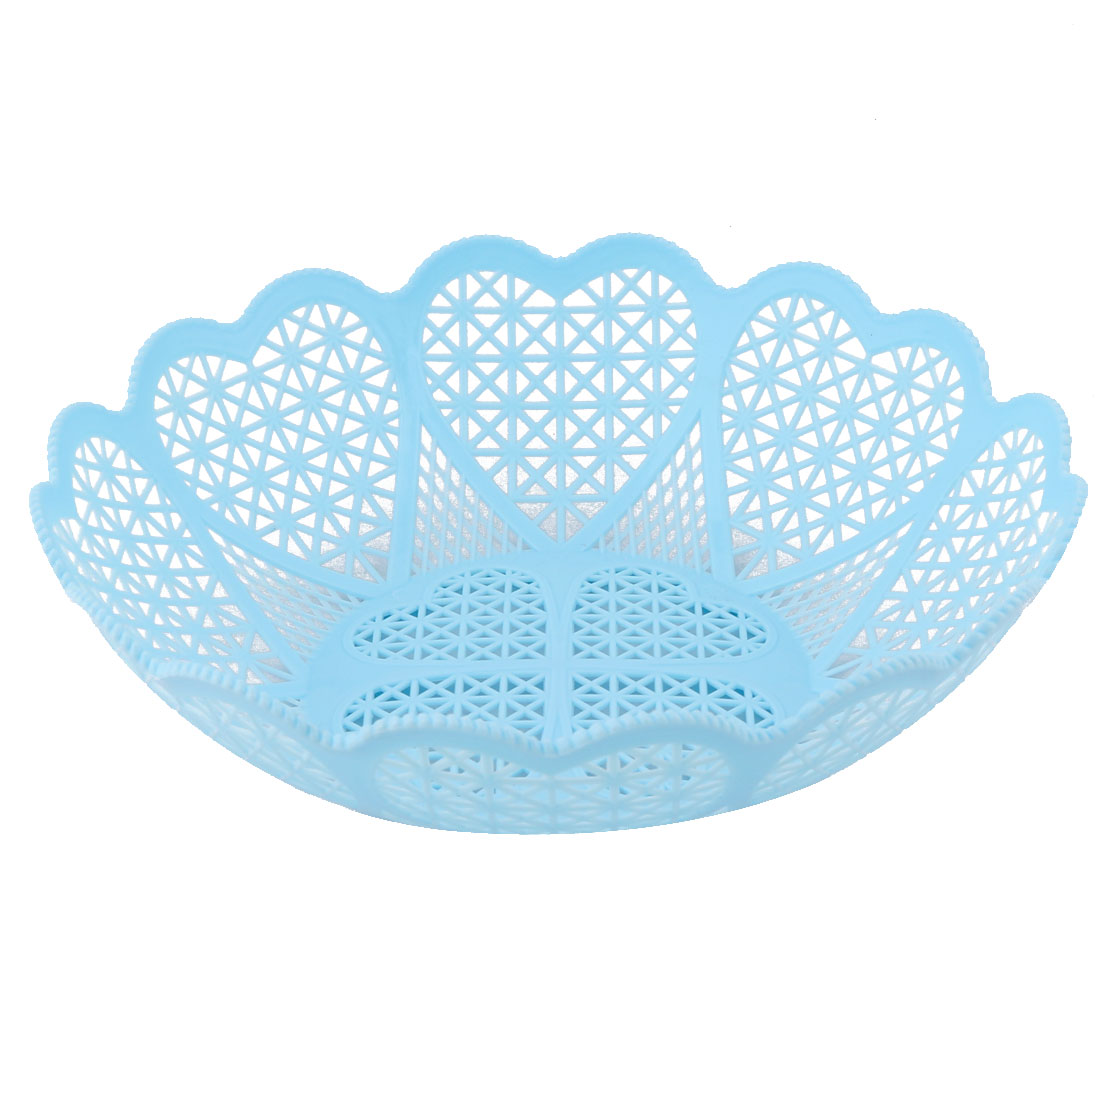 Home Kitchen Plastic Hollow Out Wavy Edge Design Fruit Vegetable Storage Basket Tray Blue